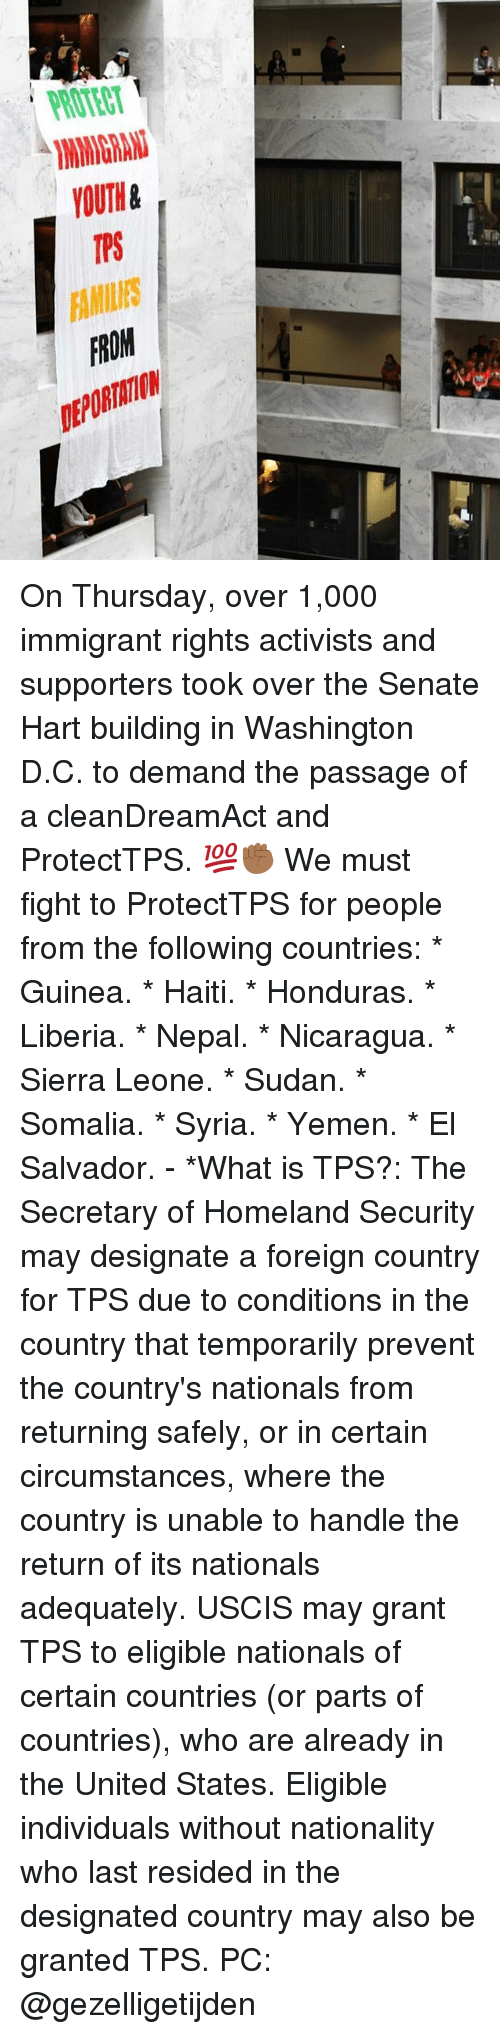 Memes, Haiti, and Homeland: ROTECT  YOUTH&  TPS  FAMILES  FROM  DEPORTATION On Thursday, over 1,000 immigrant rights activists and supporters took over the Senate Hart building in Washington D.C. to demand the passage of a cleanDreamAct and ProtectTPS. 💯✊🏾 We must fight to ProtectTPS for people from the following countries: * Guinea. * Haiti. * Honduras. * Liberia. * Nepal. * Nicaragua. * Sierra Leone. * Sudan. * Somalia. * Syria. * Yemen. * El Salvador. - *What is TPS?: The Secretary of Homeland Security may designate a foreign country for TPS due to conditions in the country that temporarily prevent the country's nationals from returning safely, or in certain circumstances, where the country is unable to handle the return of its nationals adequately. USCIS may grant TPS to eligible nationals of certain countries (or parts of countries), who are already in the United States. Eligible individuals without nationality who last resided in the designated country may also be granted TPS. PC: @gezelligetijden